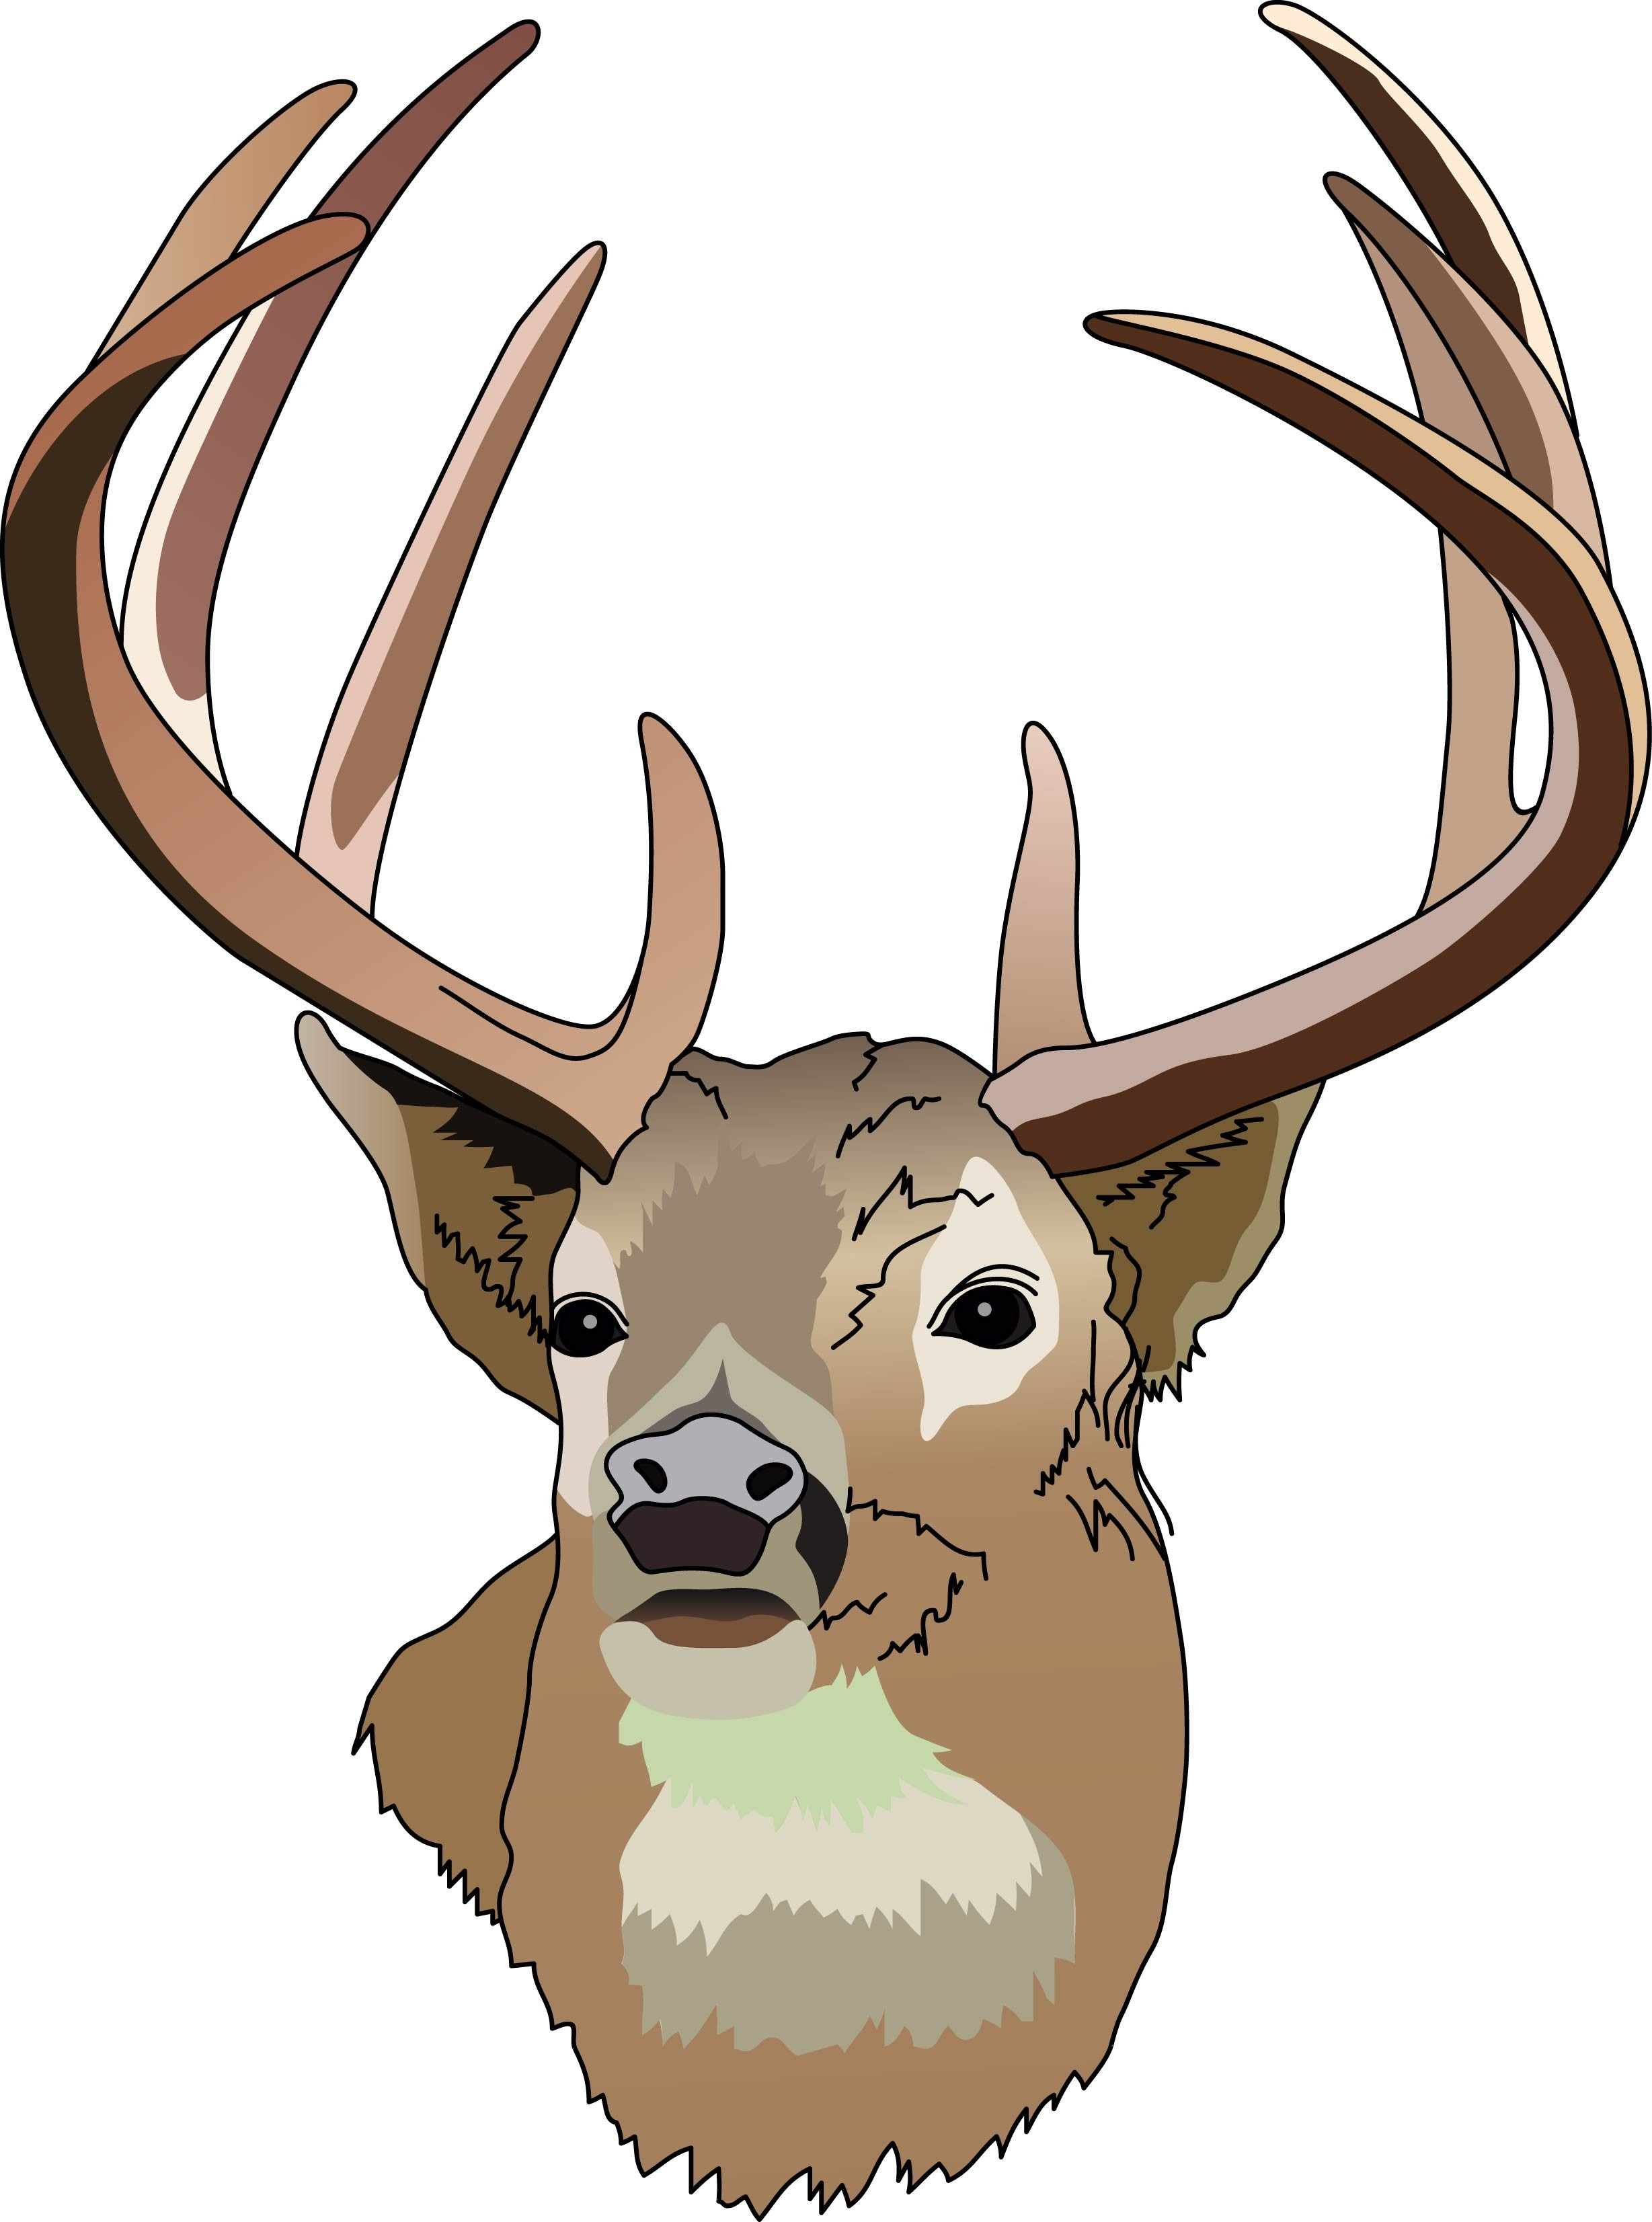 Deer Hunting Clipart Free .-Deer hunting clipart free .-17